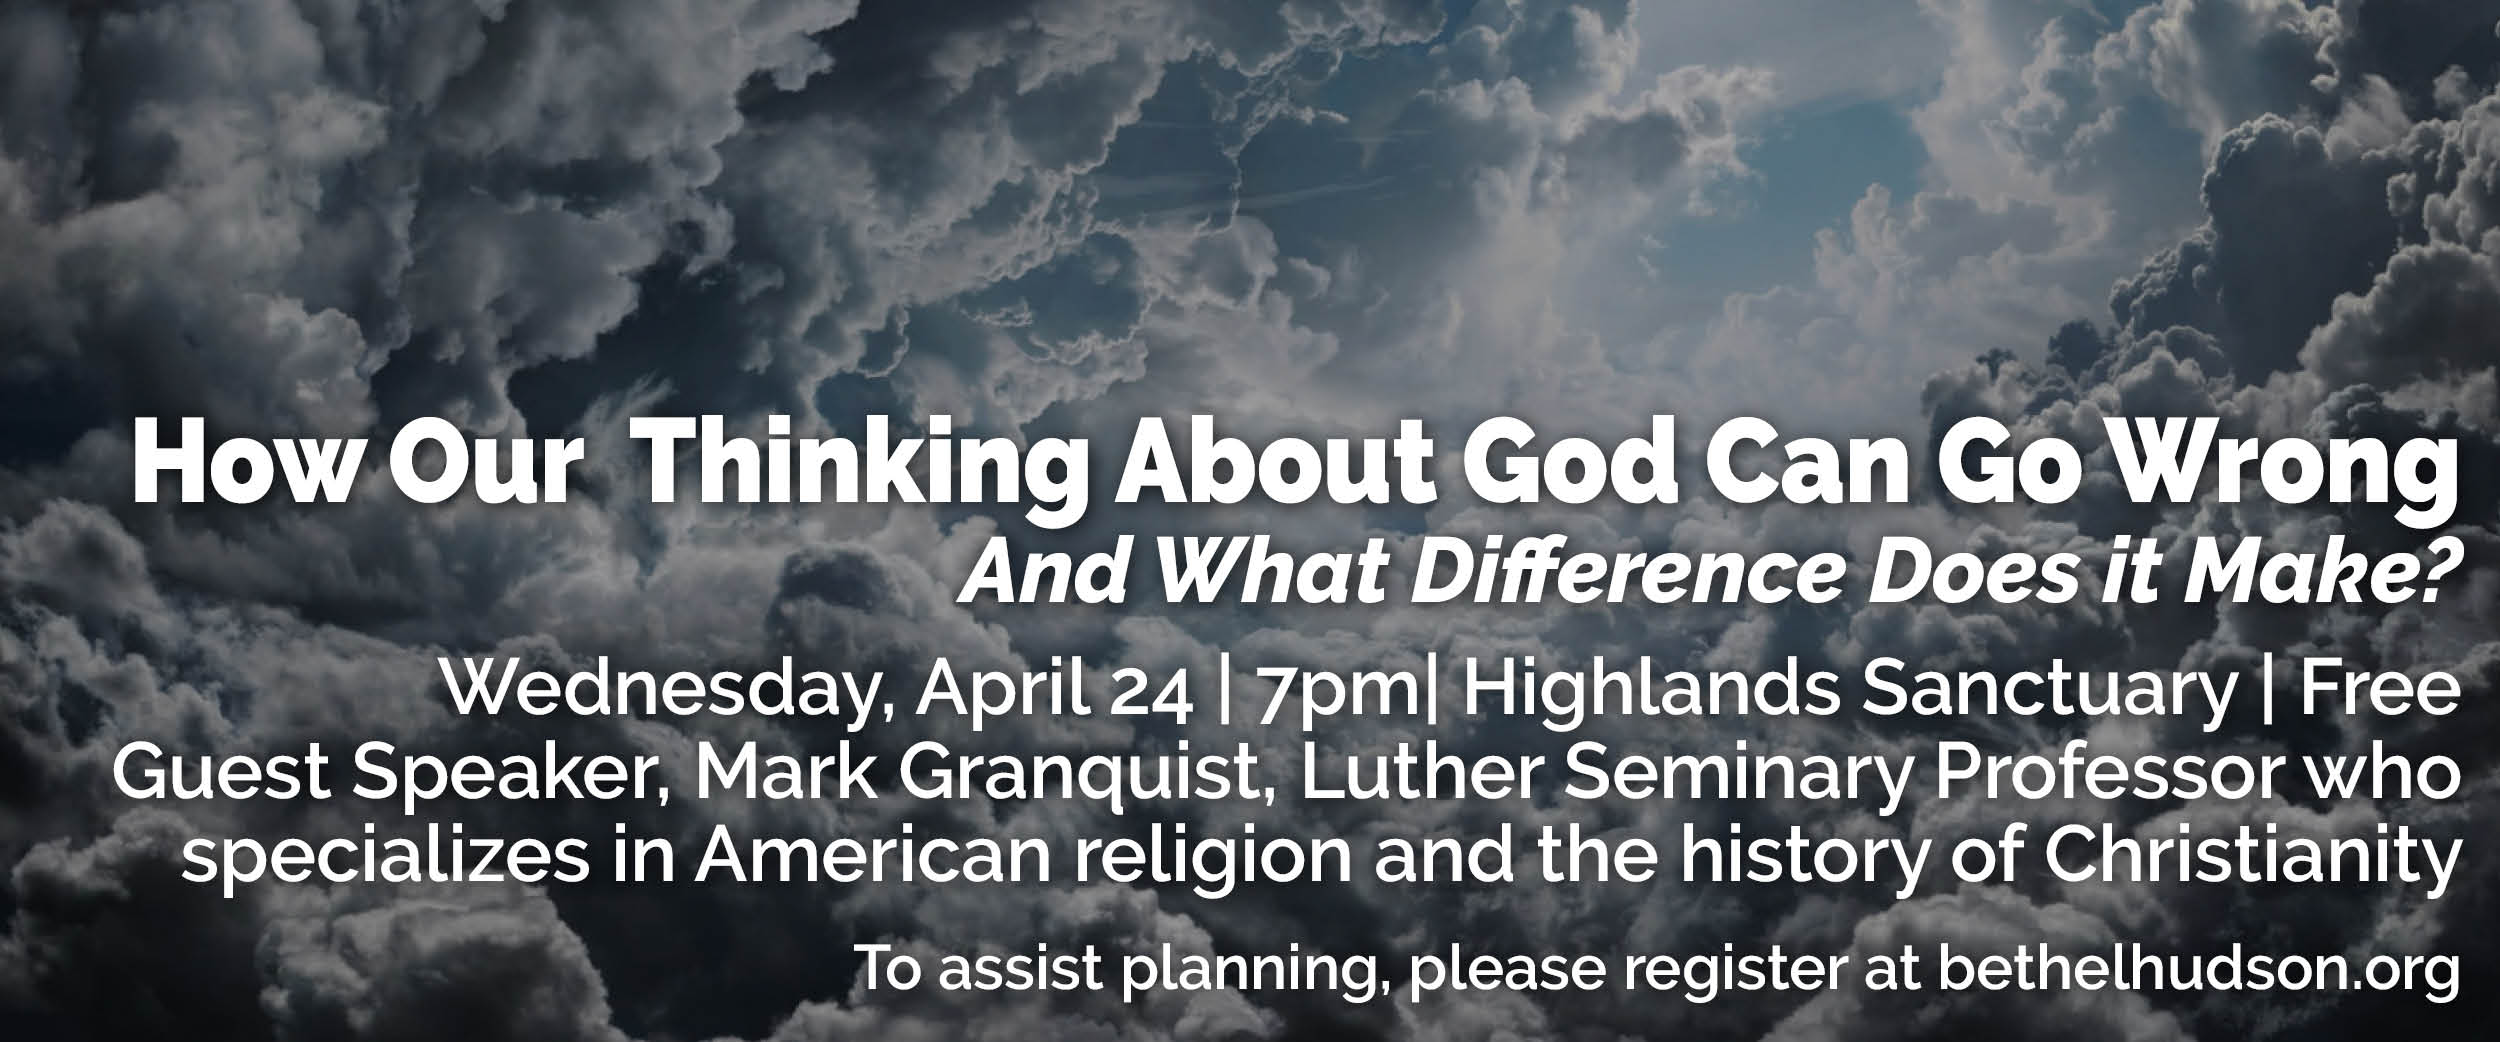 How Our Thinking About God Can Go Wrong (and What Difference Does it Make?)